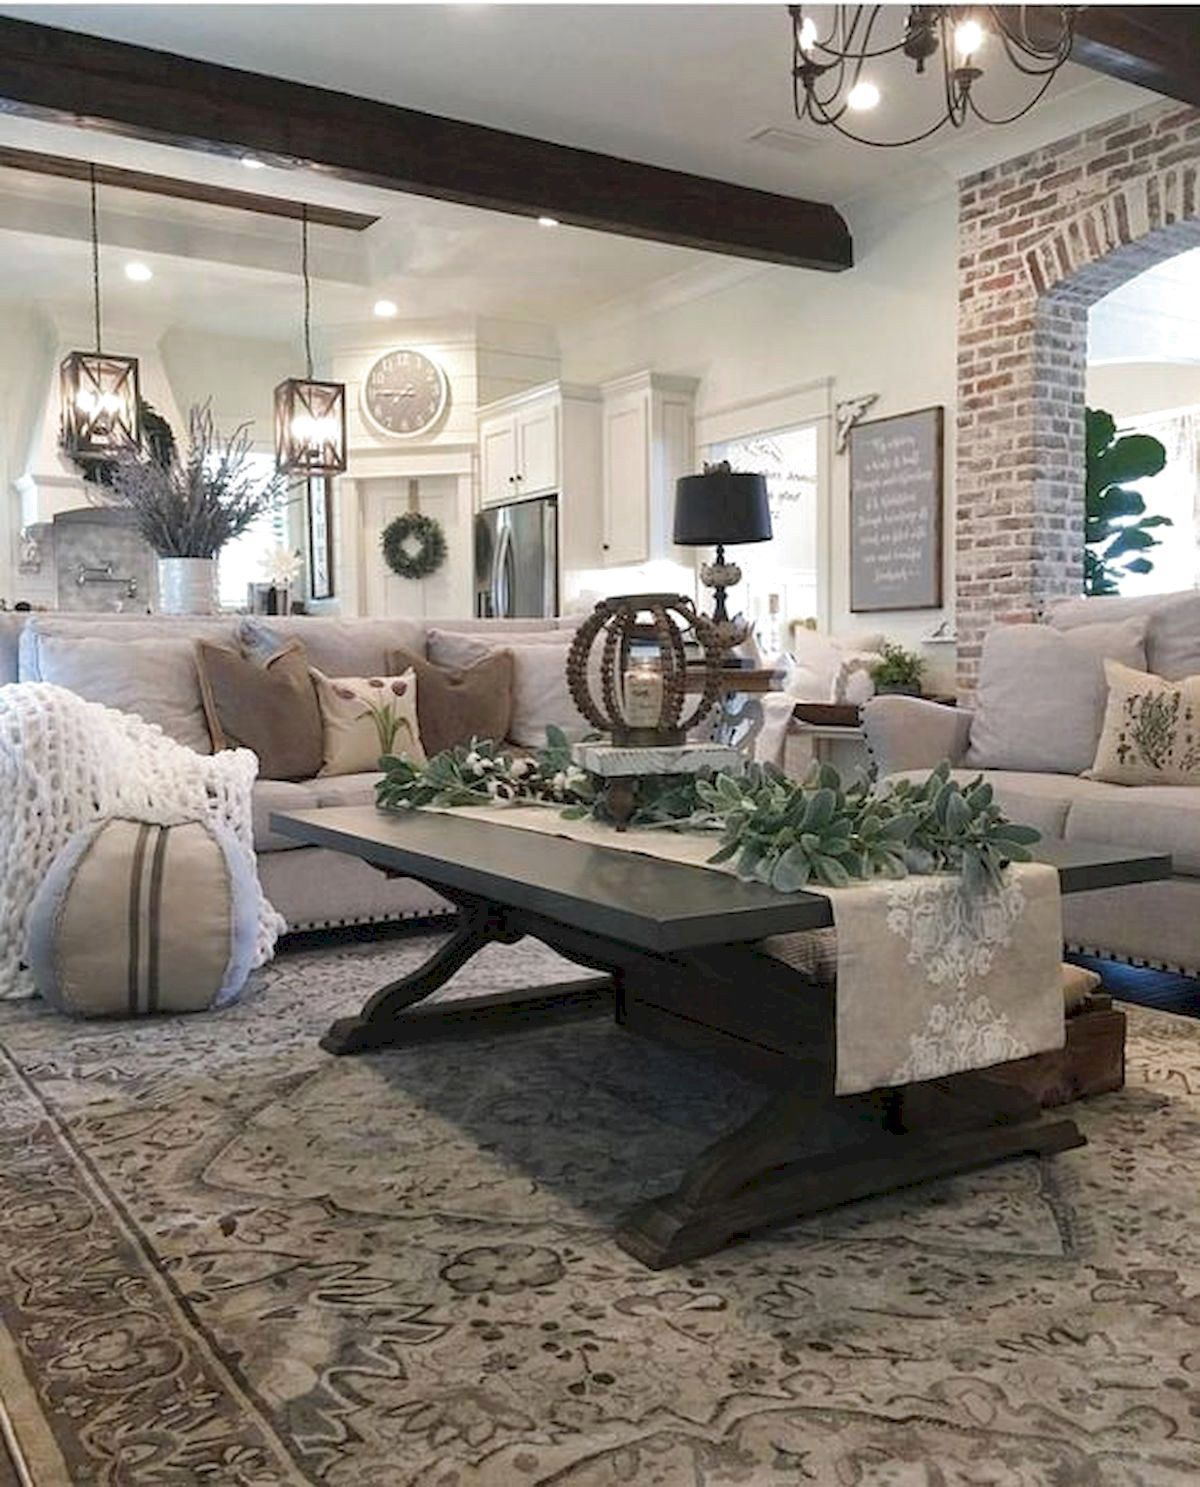 37 Best Small Bedroom Ideas And Designs For 2020: 101 Best Farmhouse Living Room Decoration Ideas In 2020